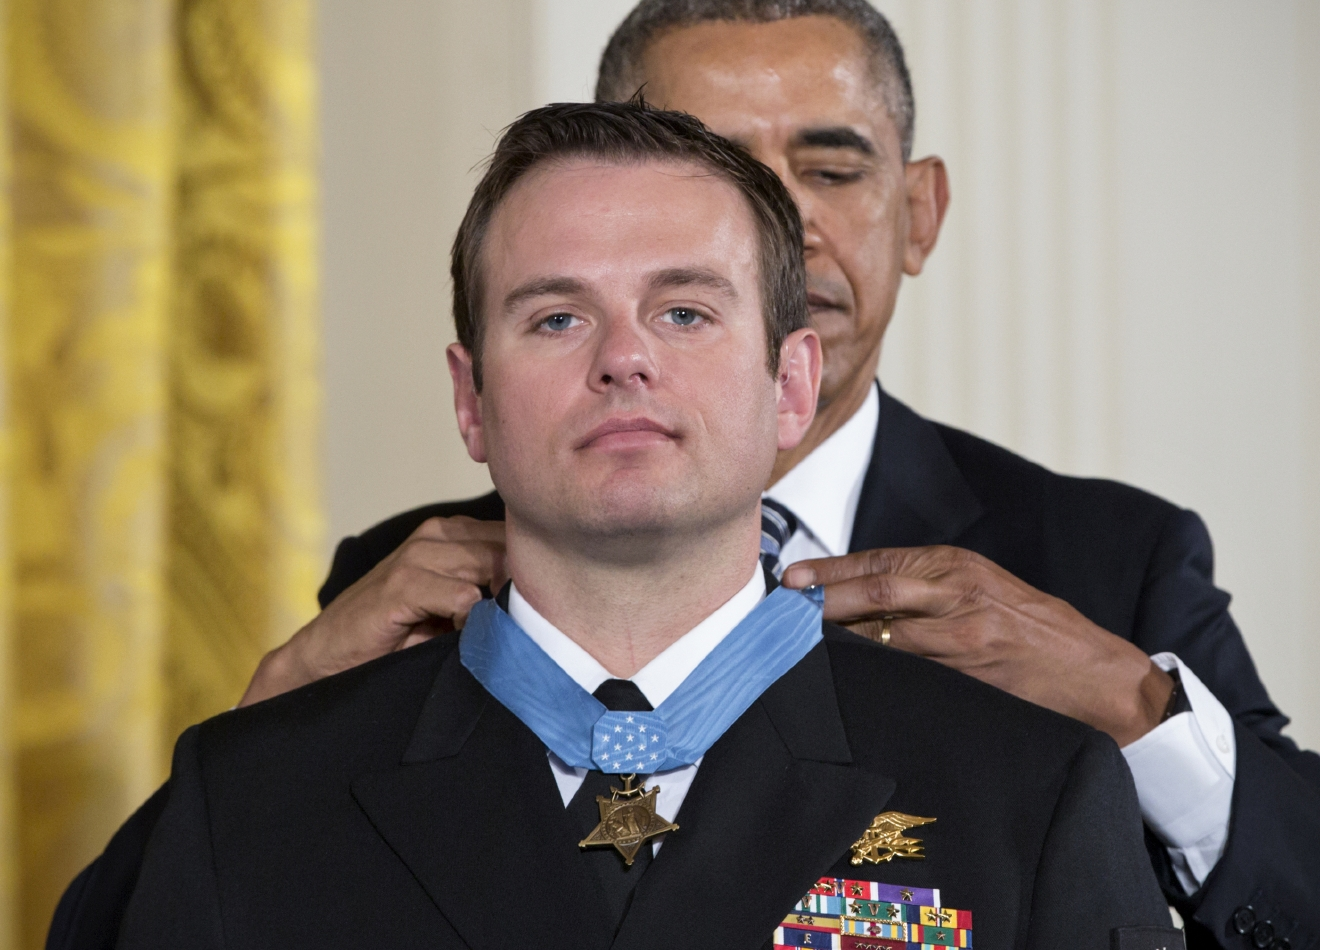 President Barack Obama presents the Medal of Honor to Senior Chief Special Warfare Operator Edward Byers during a ceremony in the East Room of the White House in Washington, Monday, February 29, 2016. Navy Senior Chief Byers is received the Medal of Honor for his courageous actions while serving as part of a team that rescued an American civilian being held hostage in Afghanistan on December 8-9, 2012. (AP Photo/J. Scott Applewhite)